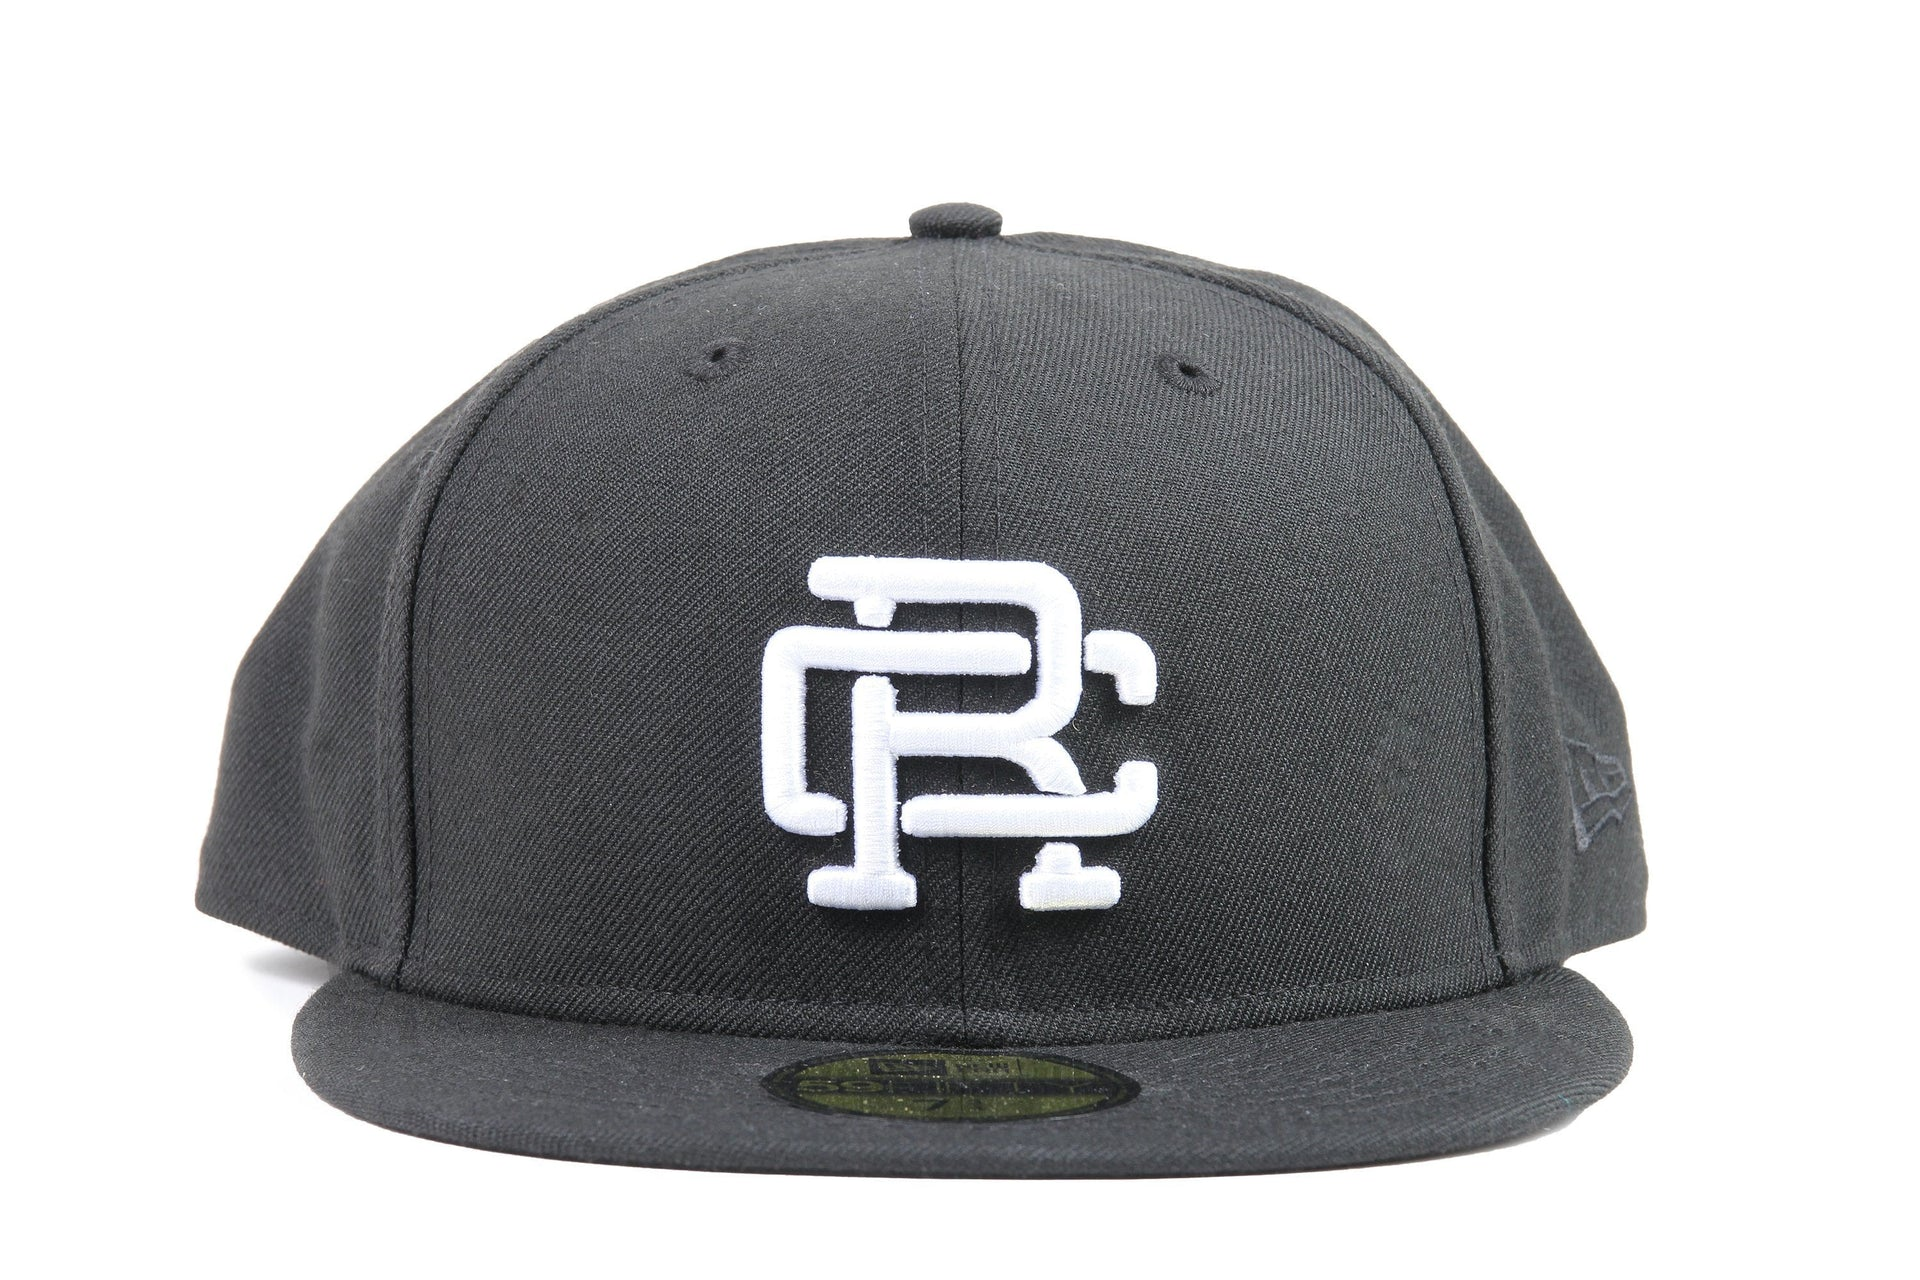 272eda3eee BLACK WOVEN NEW ERA RC EMBROIDERED HAT RC-7052 HATS REIGNING CHAMP BLACK 7 3